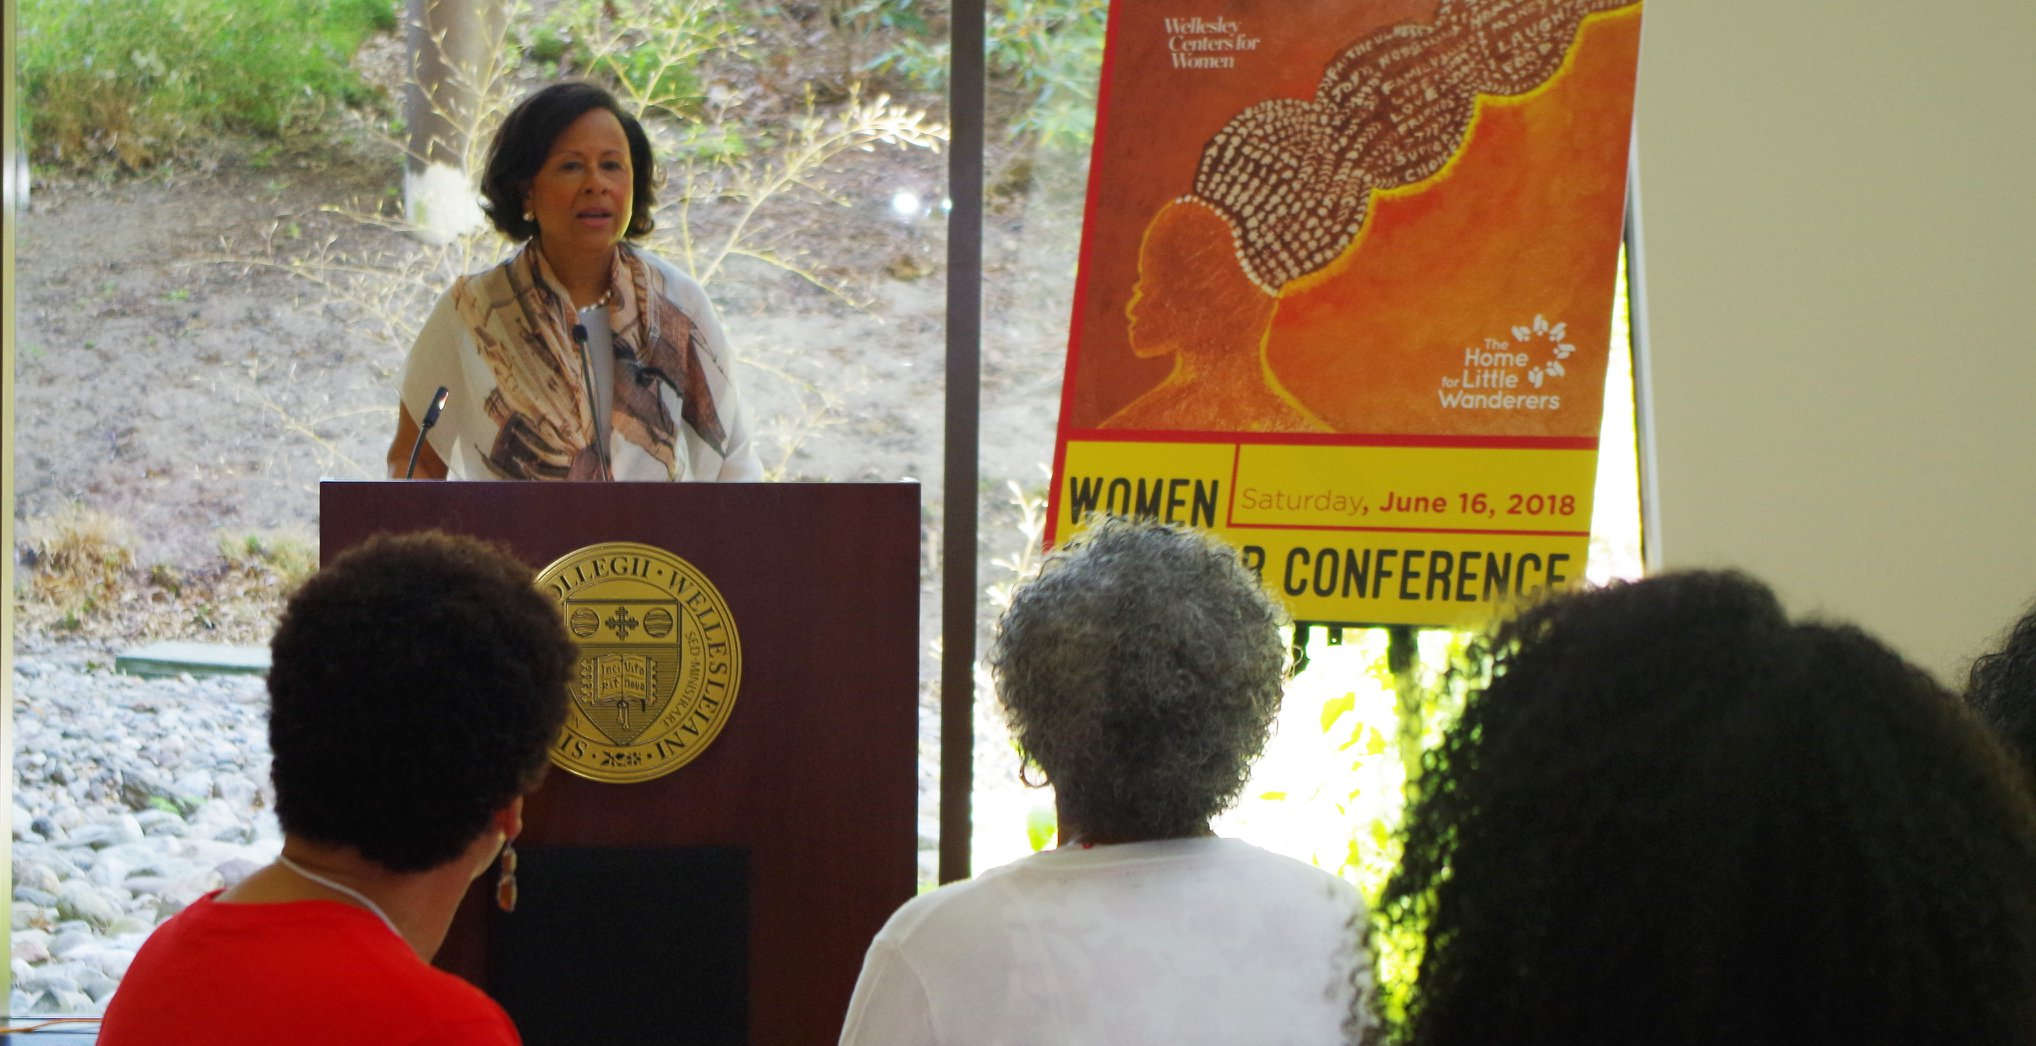 Wellesley College President Dr. Paula Johnson speaks at Women of Color Conference